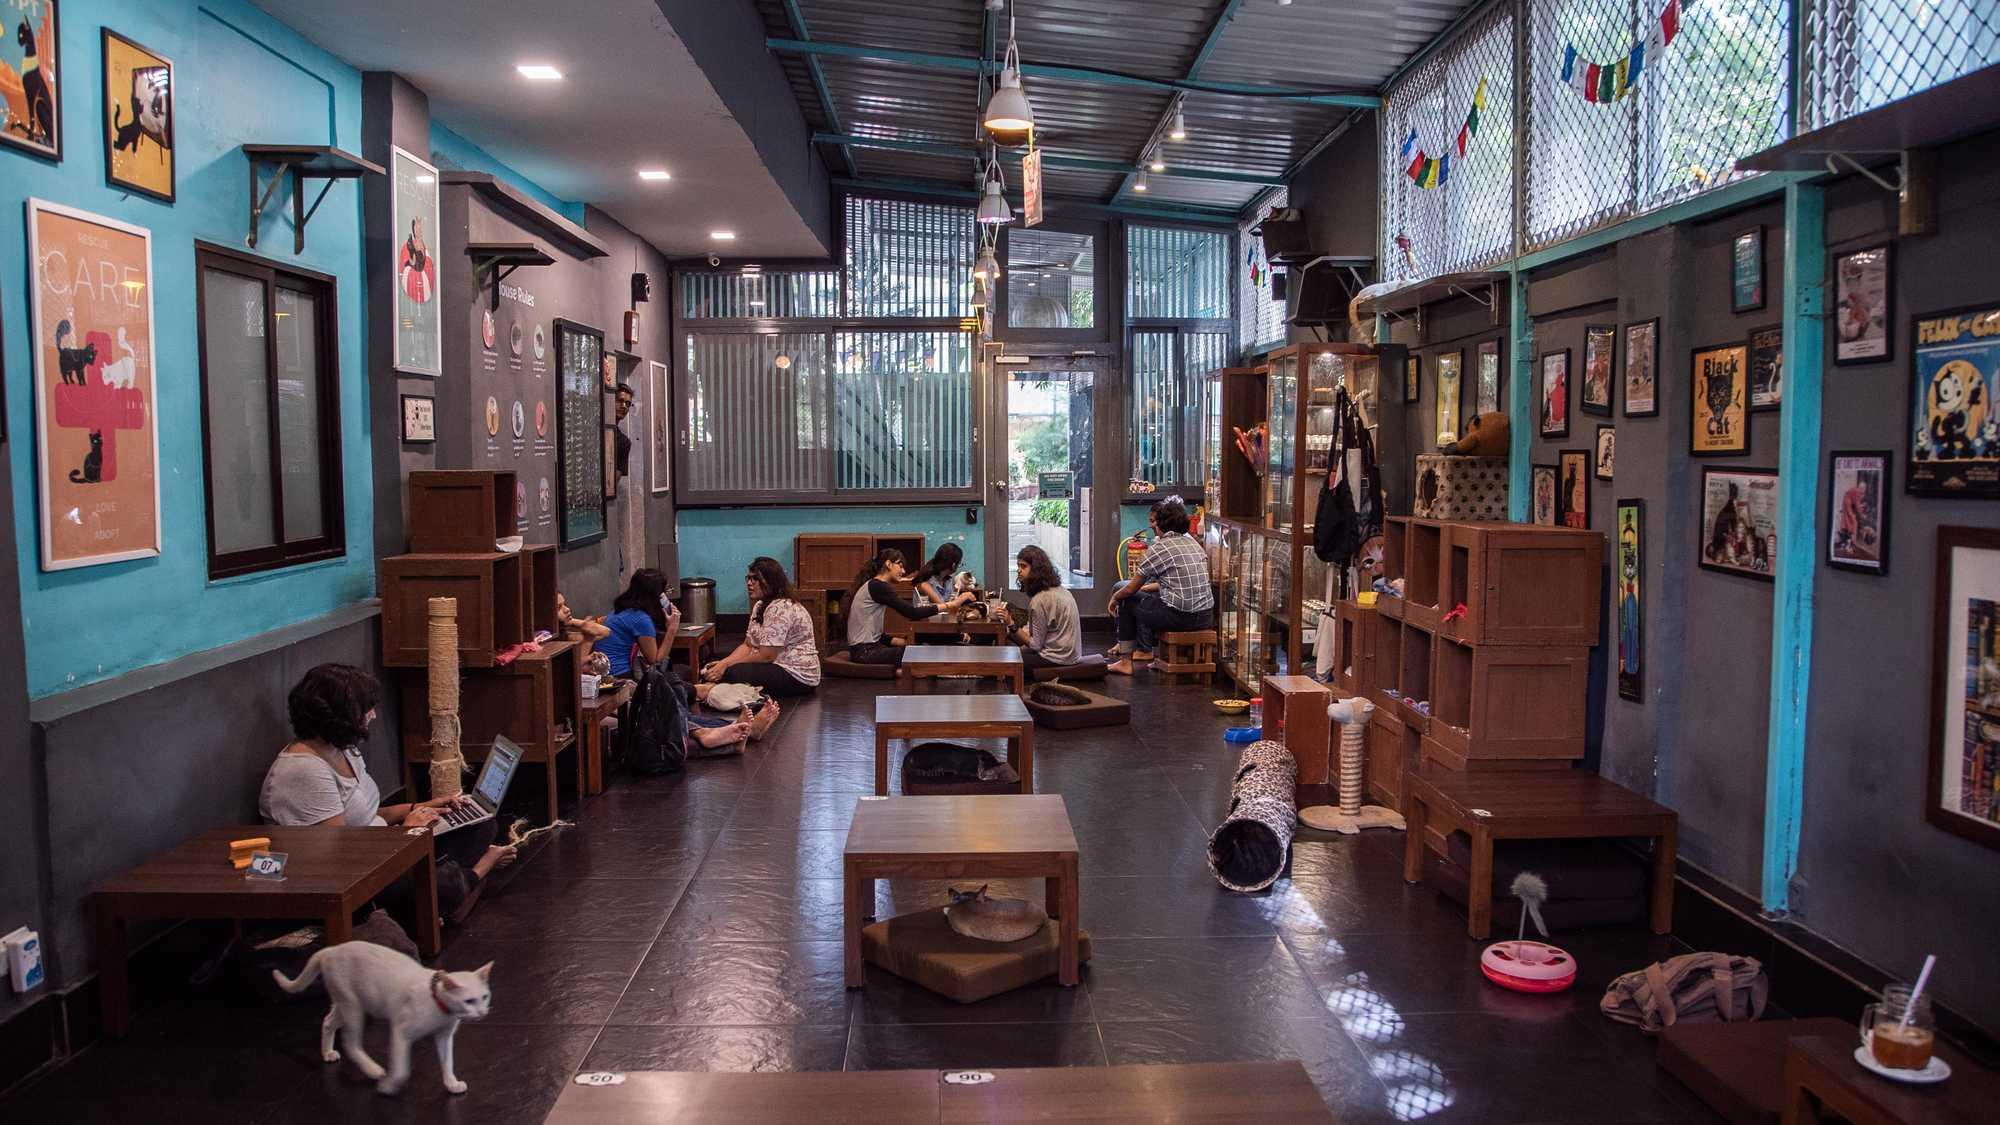 Cat Café Studio, Mumbai- India's first Café for Stray Cats